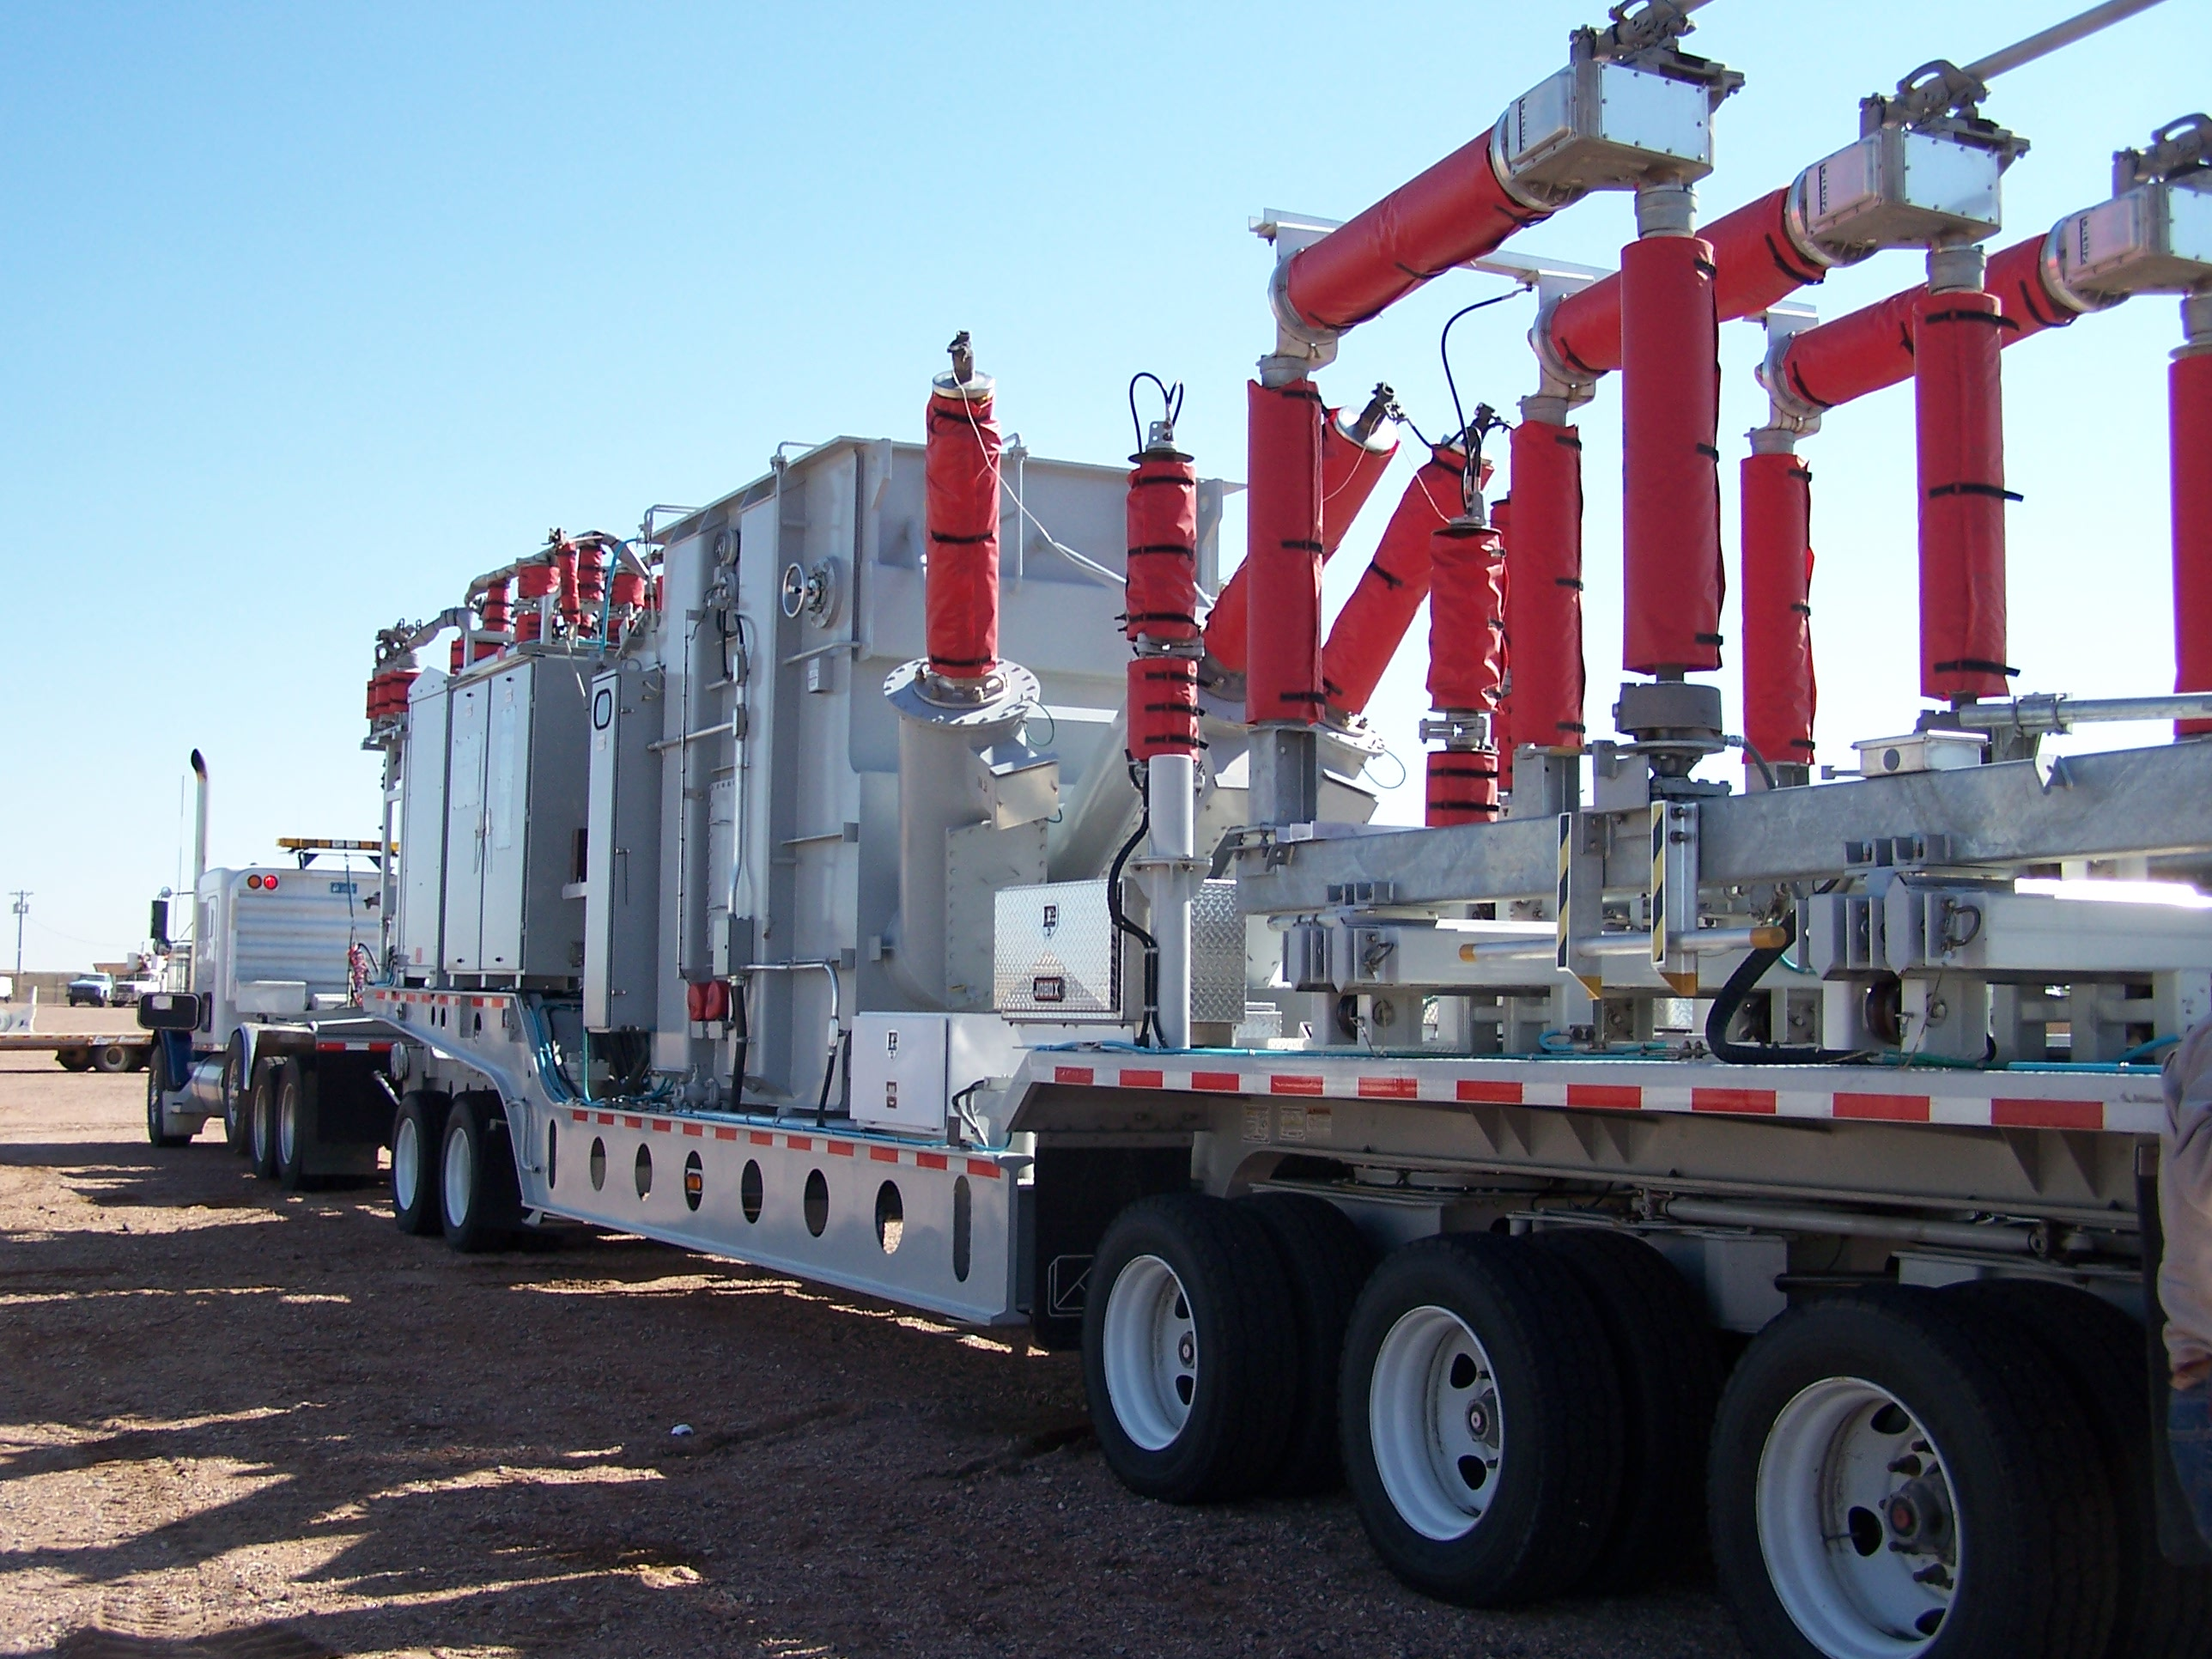 Mobile power substation prepared to deploy in an emergency.